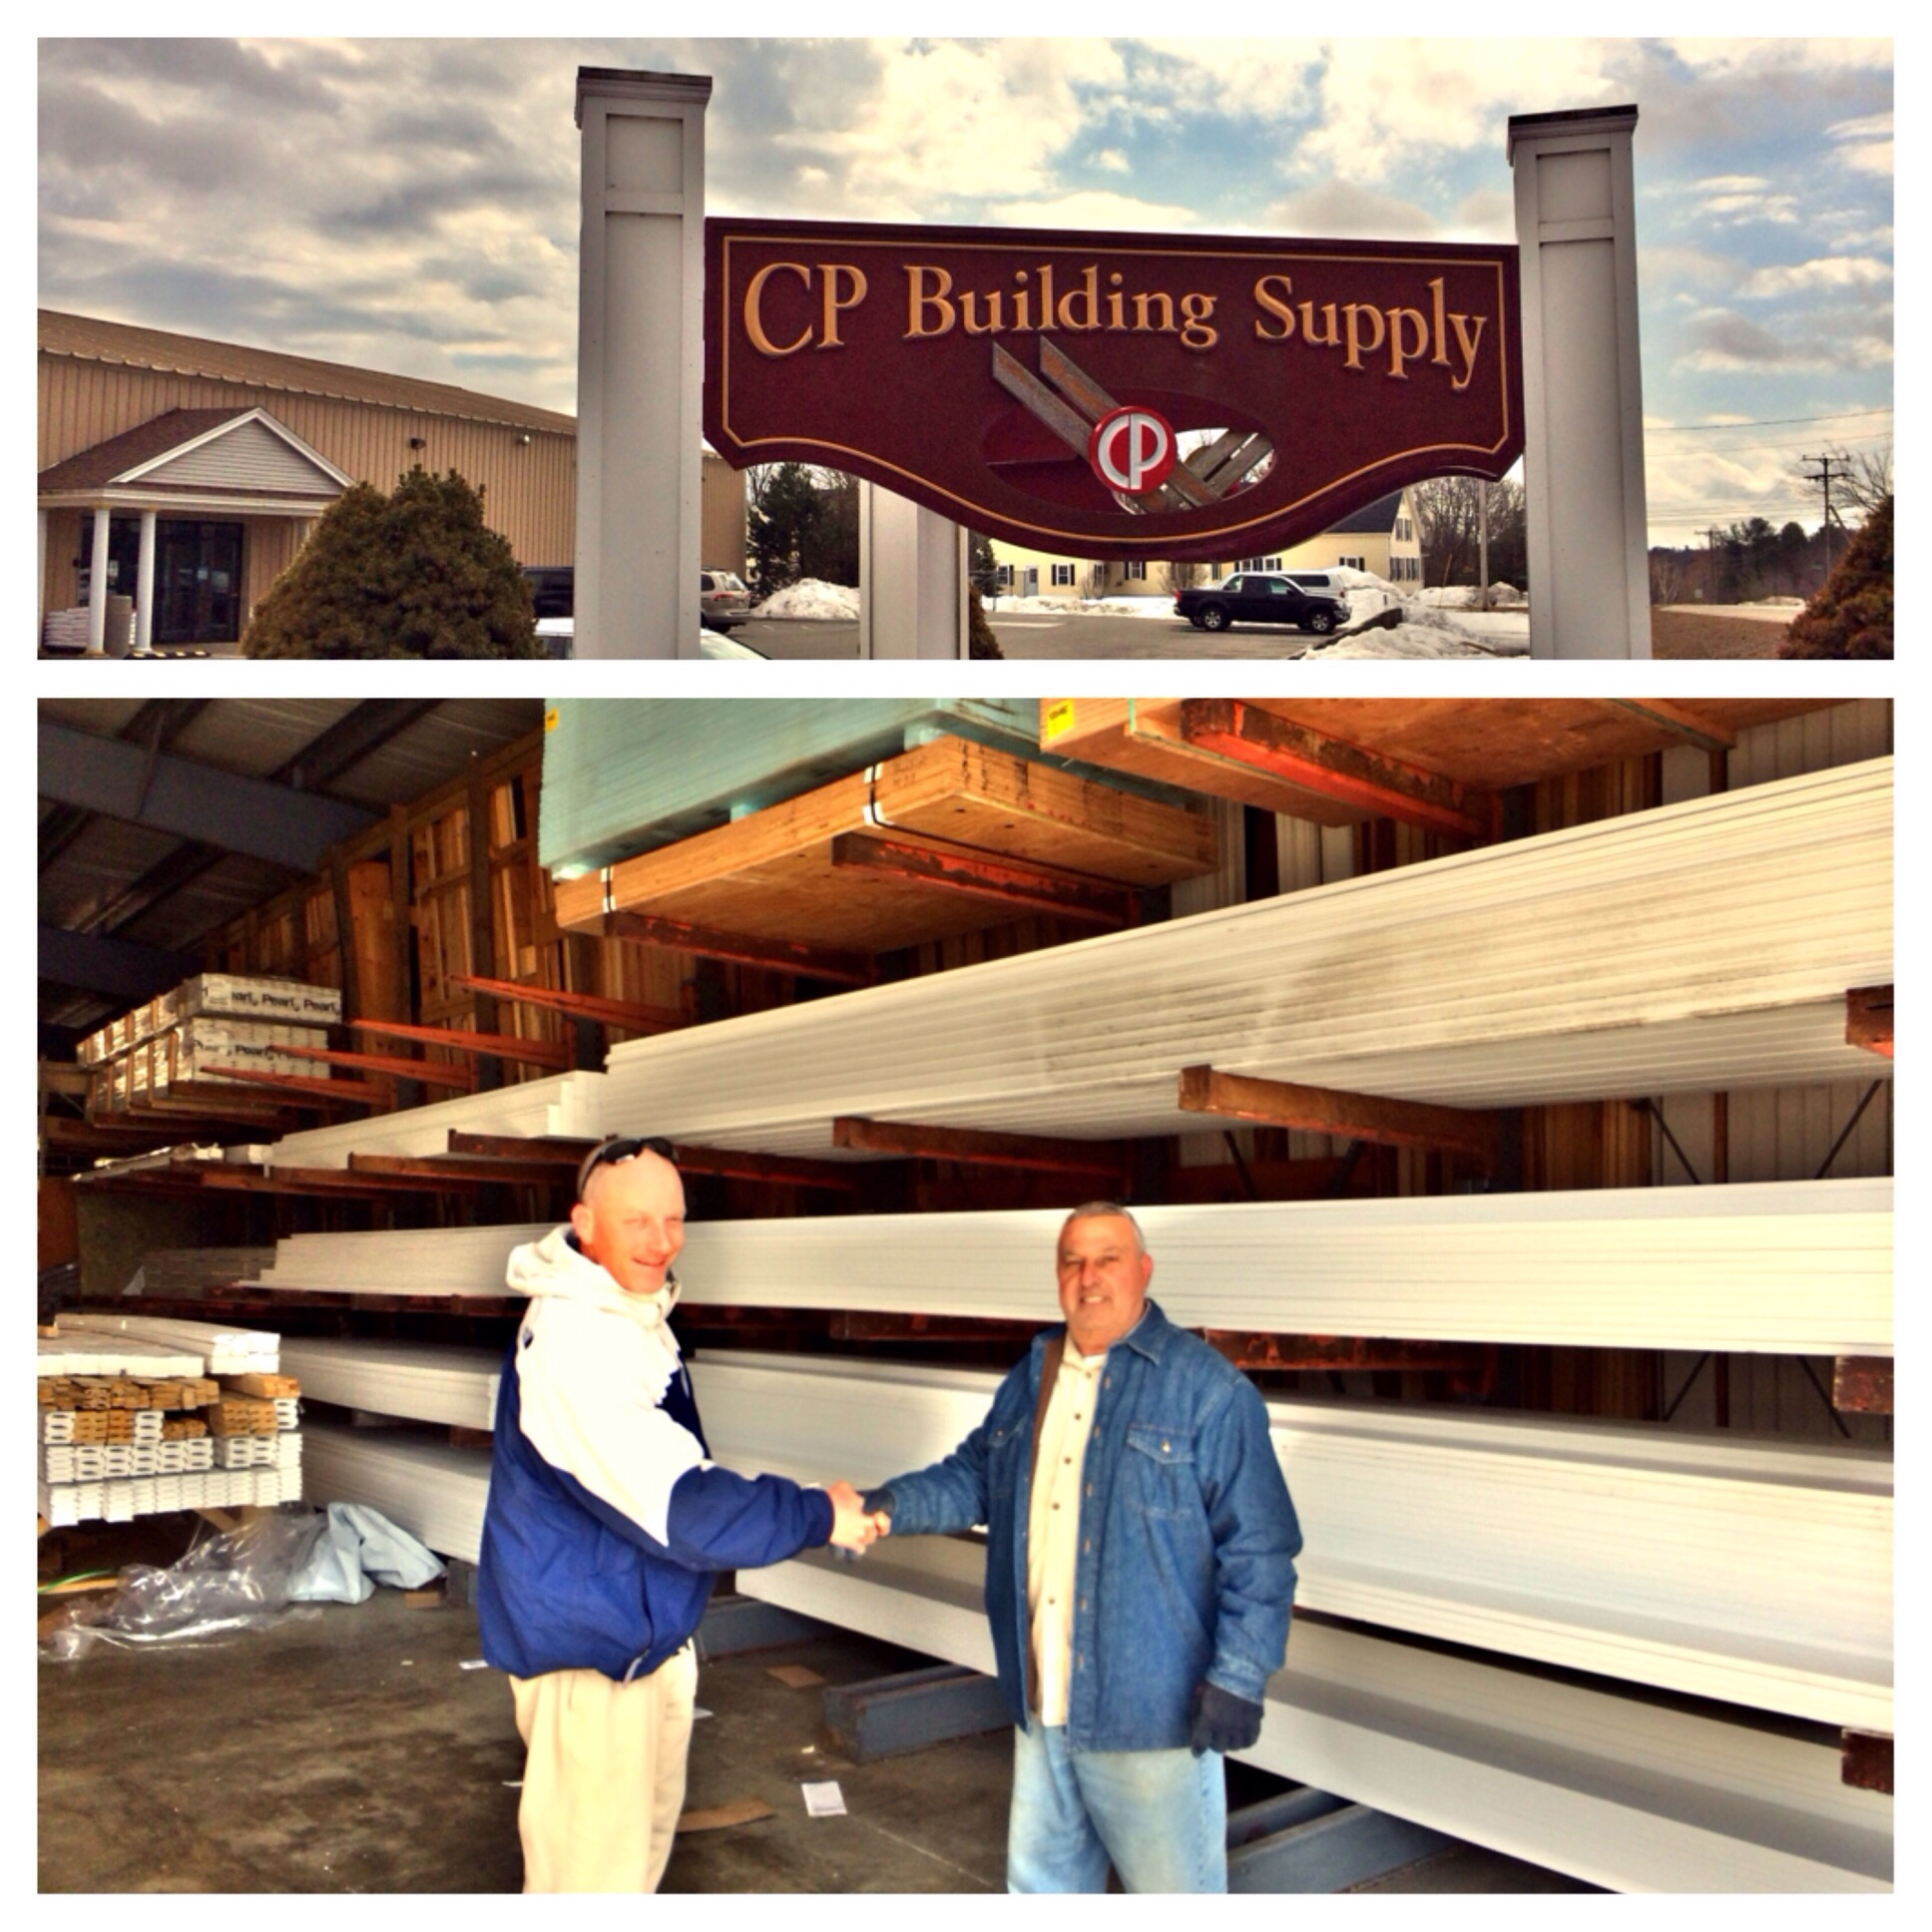 Tony shows us around at CP Building Supply